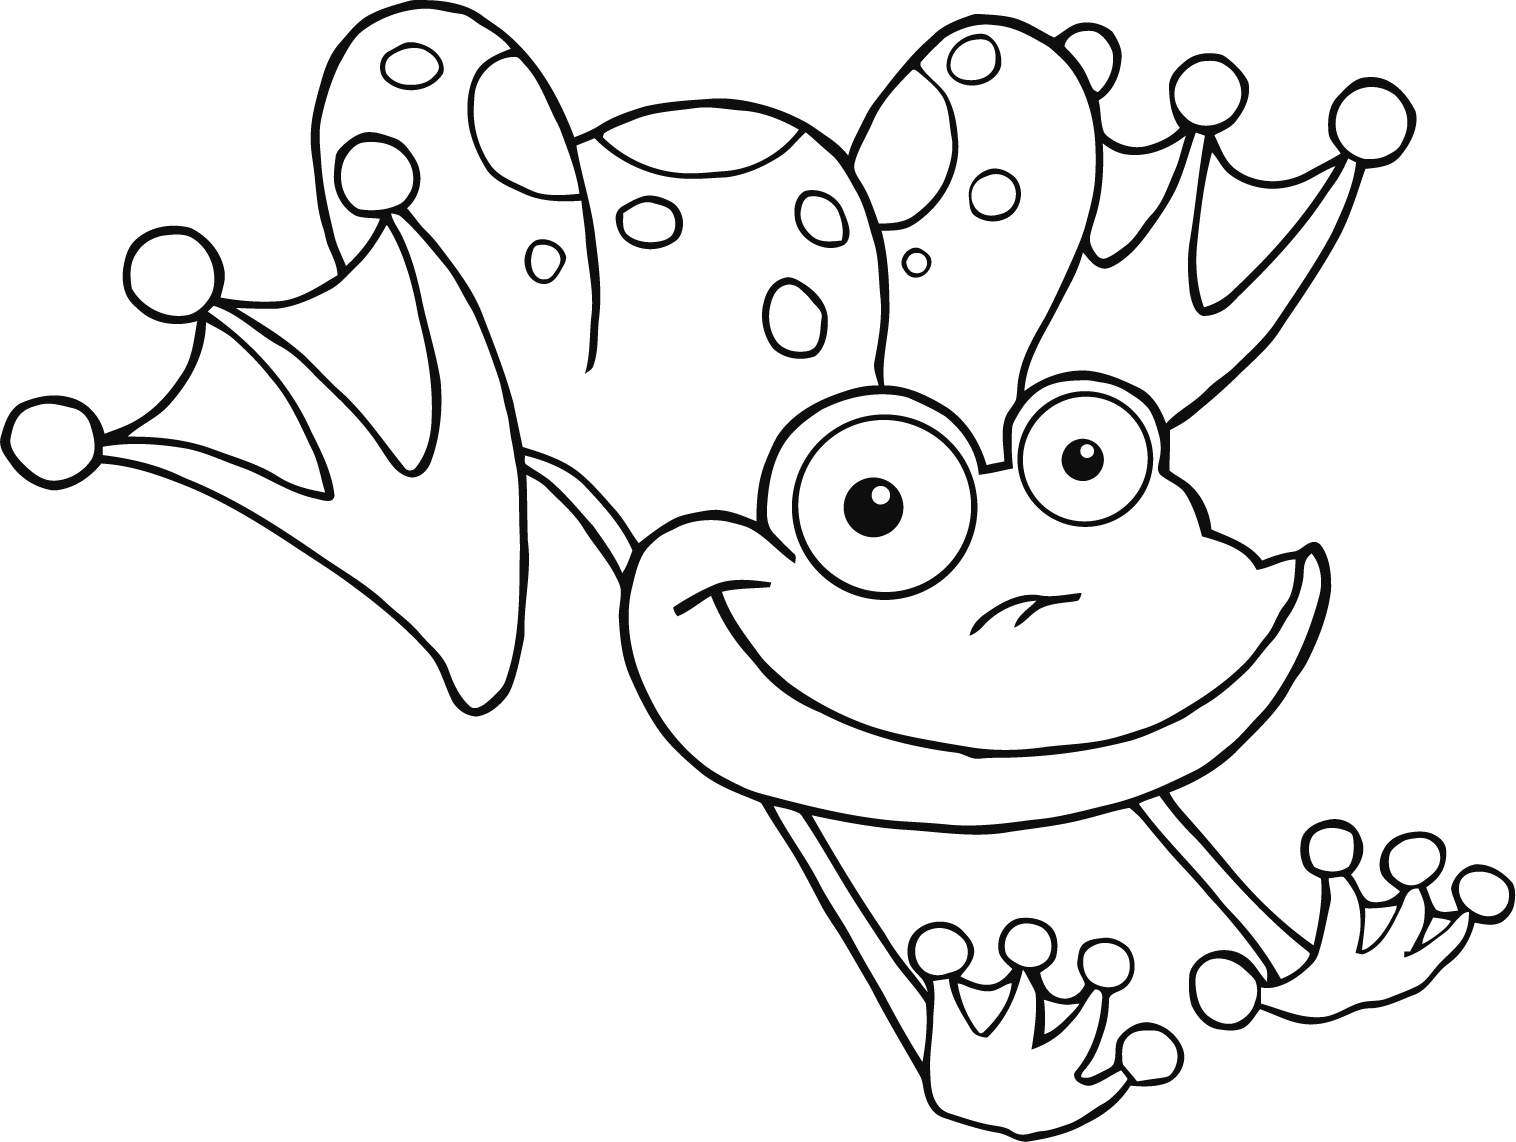 coloring images of frog realistic frog coloring pages free download on clipartmag images frog of coloring